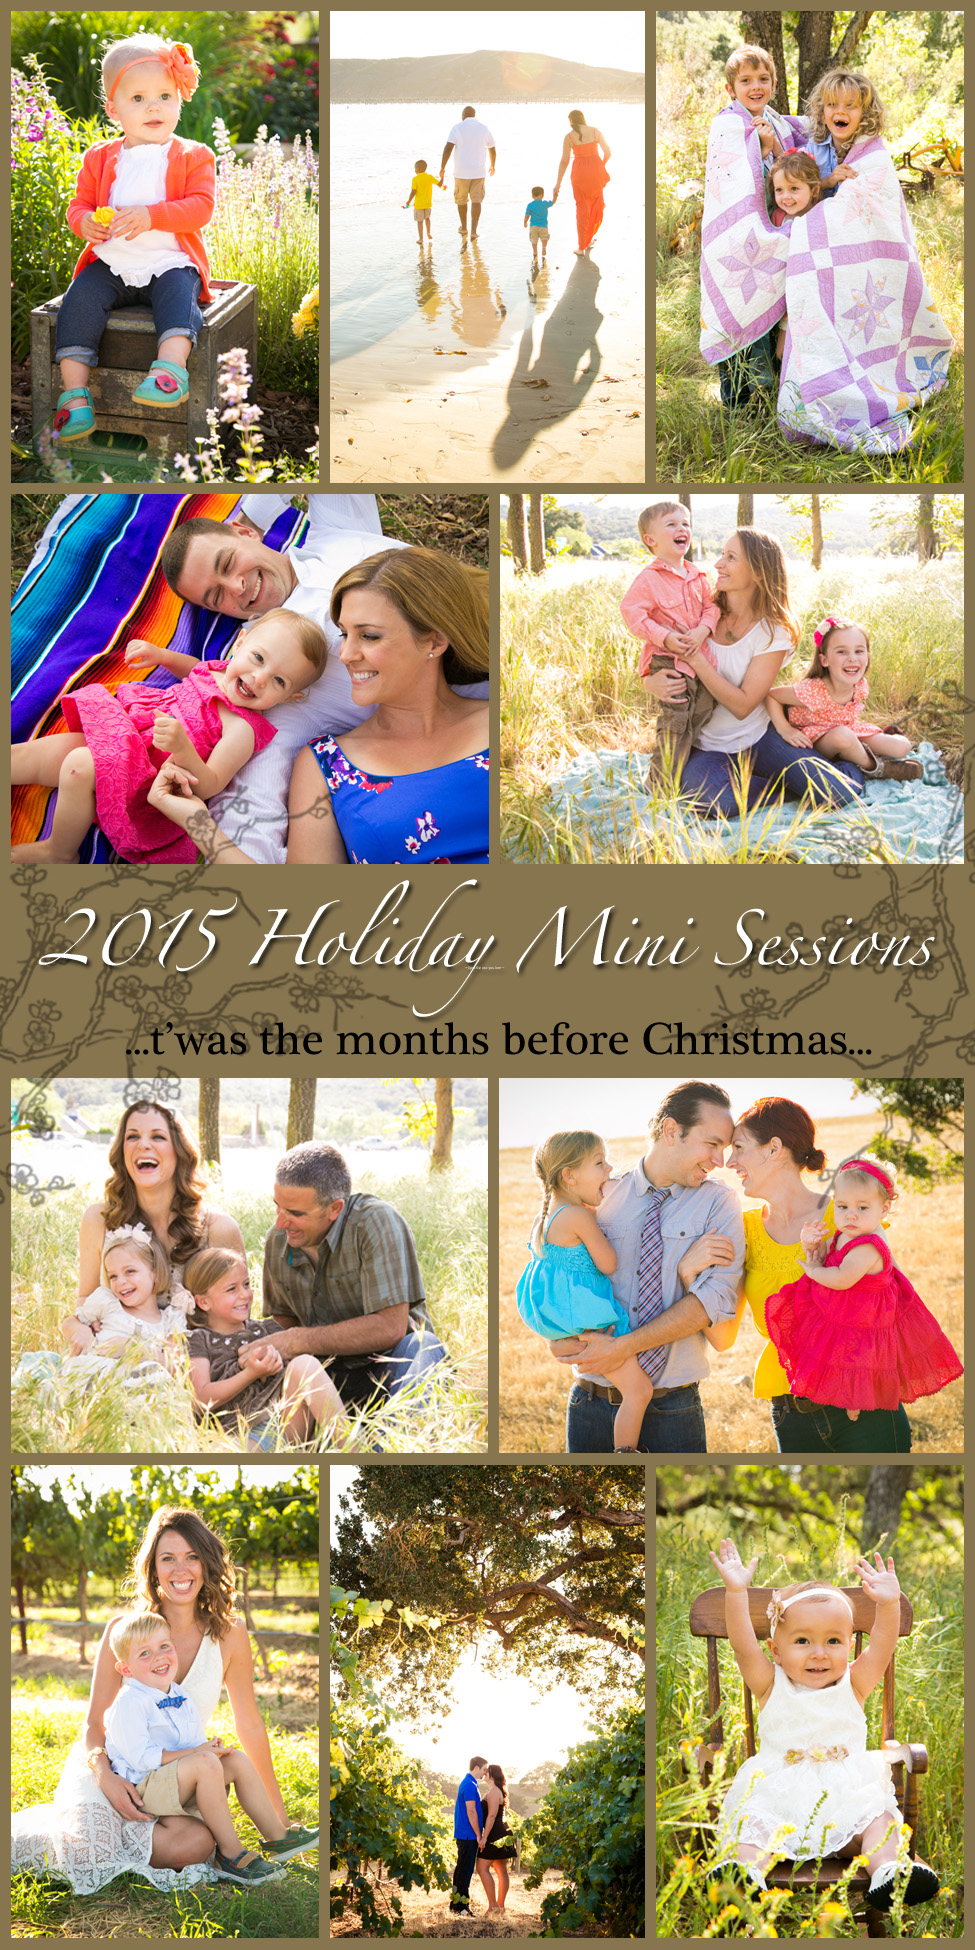 2015 Holiday Mini Session.jpg